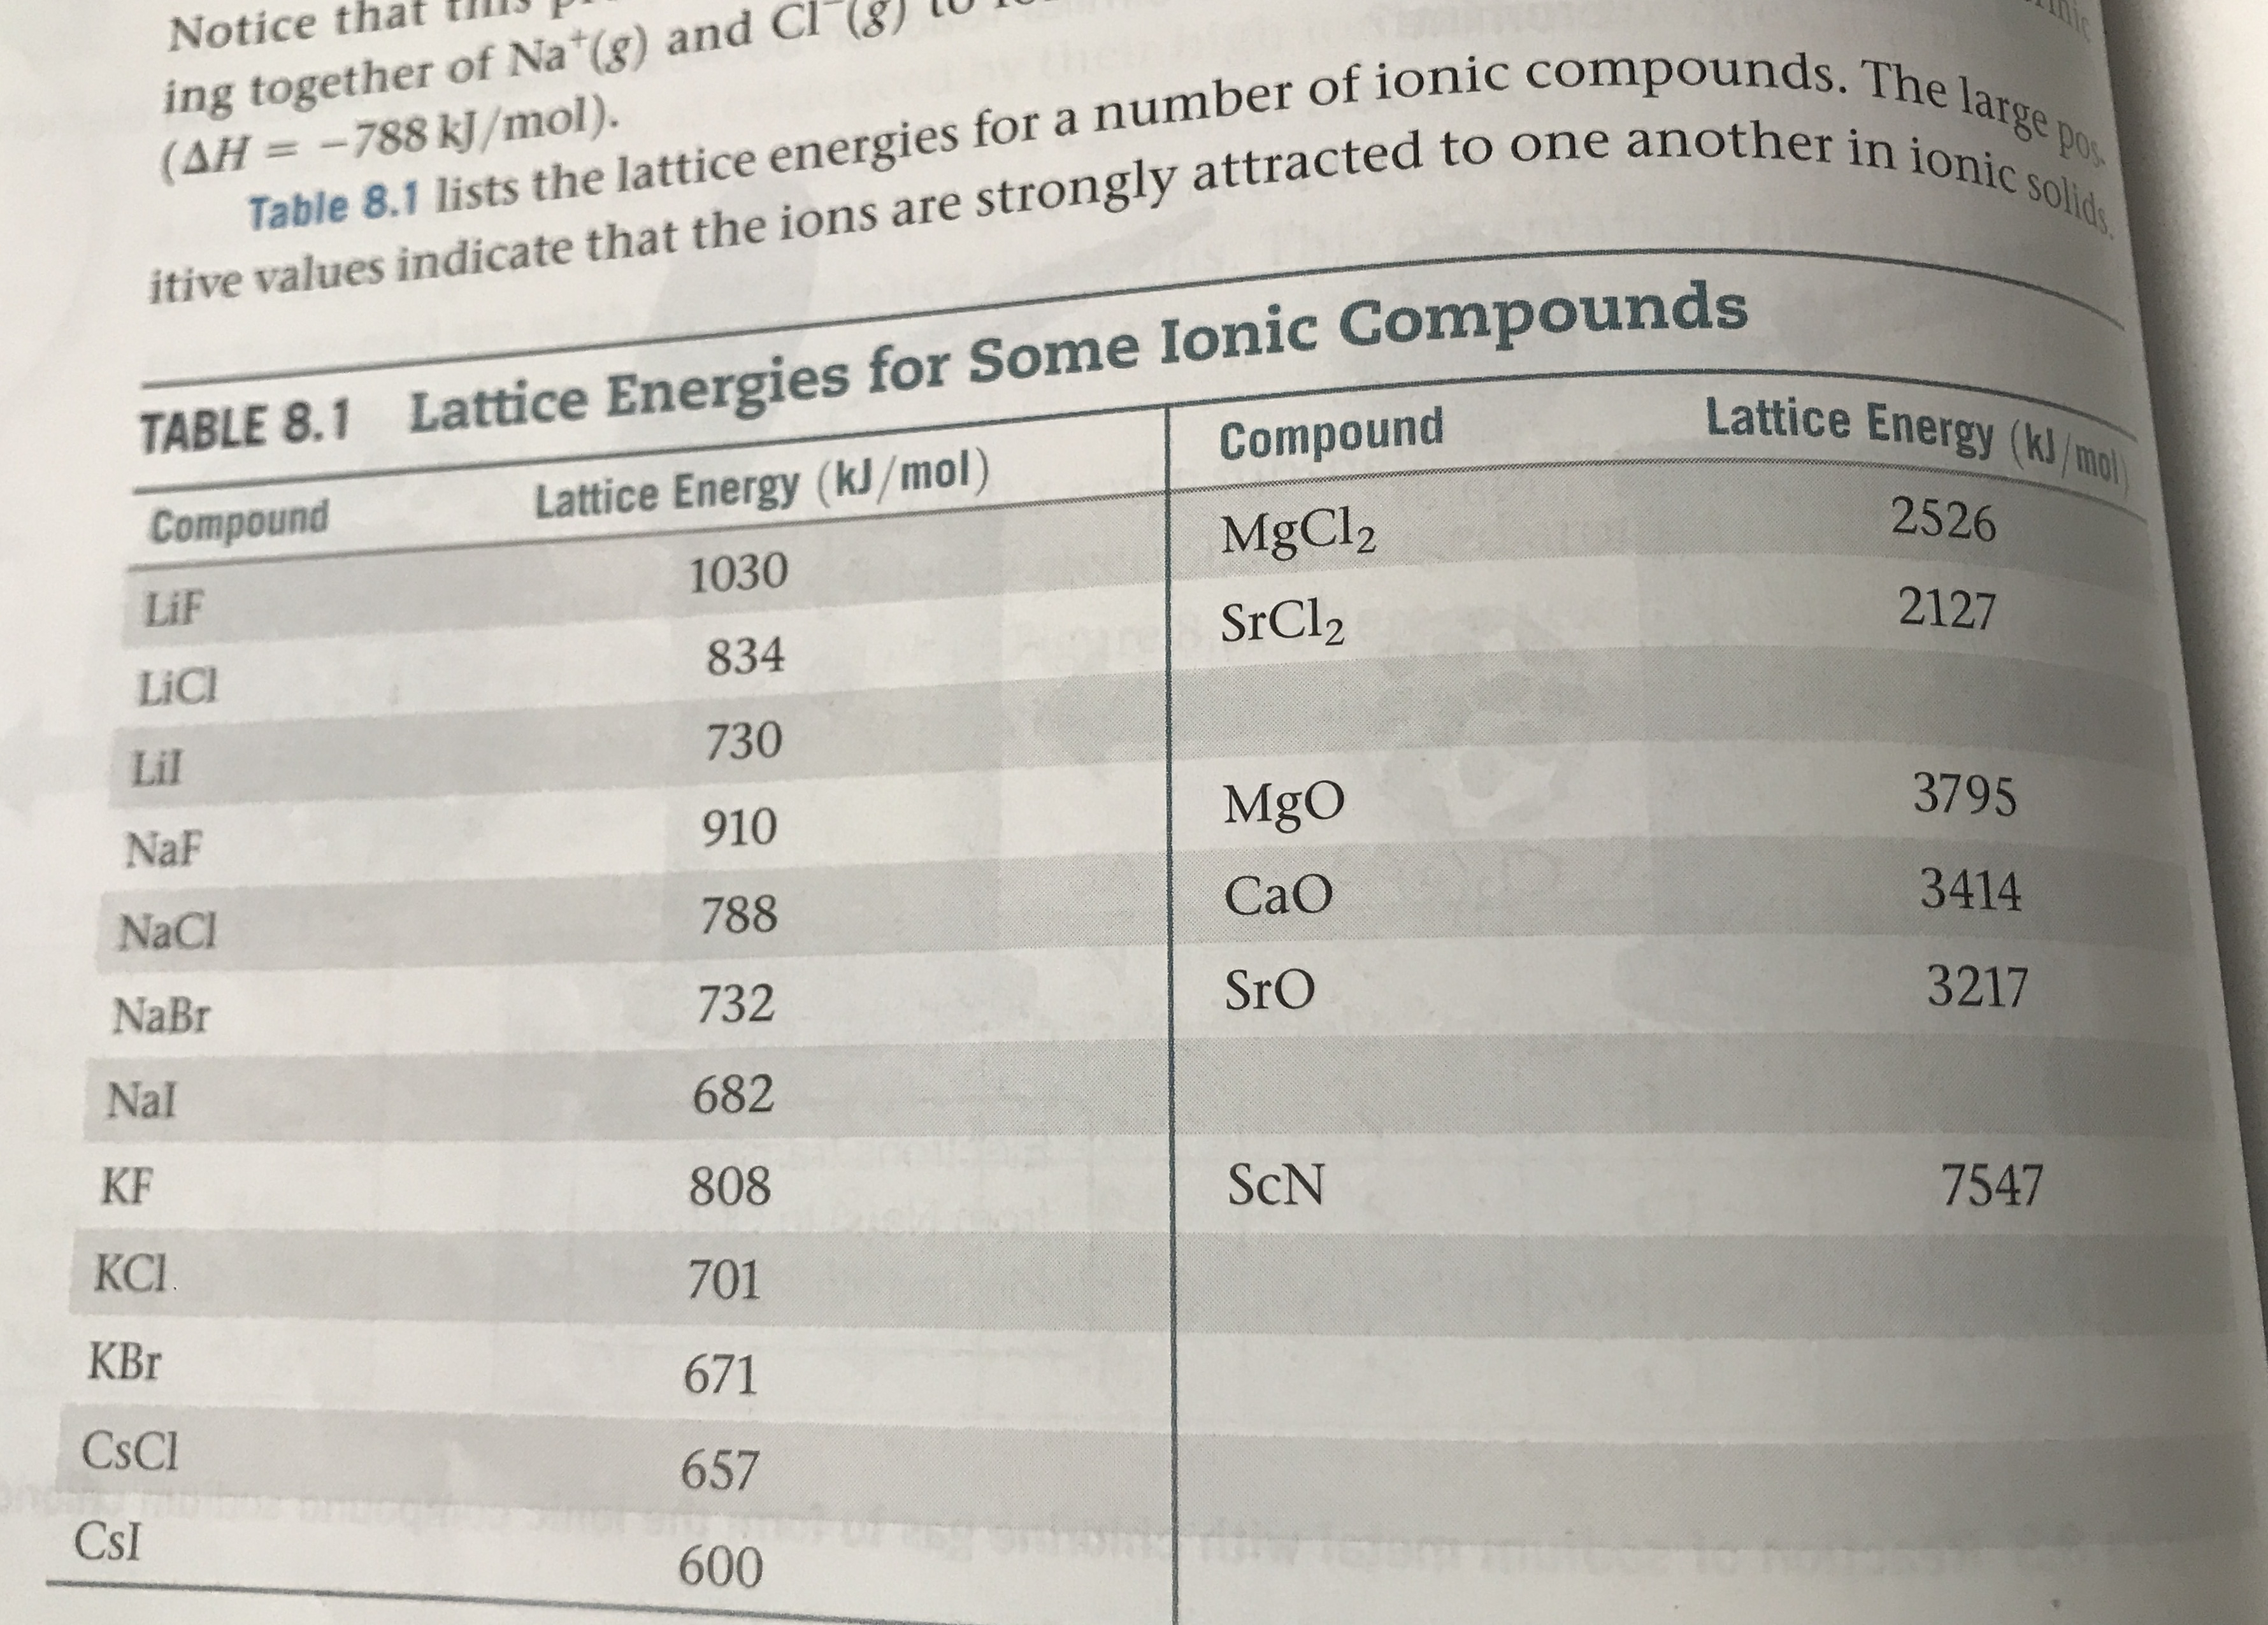 ing together of Na (g) and Cl (AH=-788 kJ/mol). Notice Table 8.1 lists the lattice energies for a number of ionic compounds. The large itive values indicate that the ions are strongly attracted to one another in ionic solid Pos TABLE 8.1 Lattice Energies for Some Ionic Compounds Lattice Energy (kJ/mol) Lattice Energy (kJ/mo Compound 2526 Compound MgCl2 1030 2127 LiF SrCl2 834 LiCl 730 Lil 3795 MgO 910 NaF 3414 CaO 788 NaCl 3217 SrO 732 NaBr 682 Nal ScN 7547 KF 808 КС. 701 KBr 671 CsCl 657 CsI 600